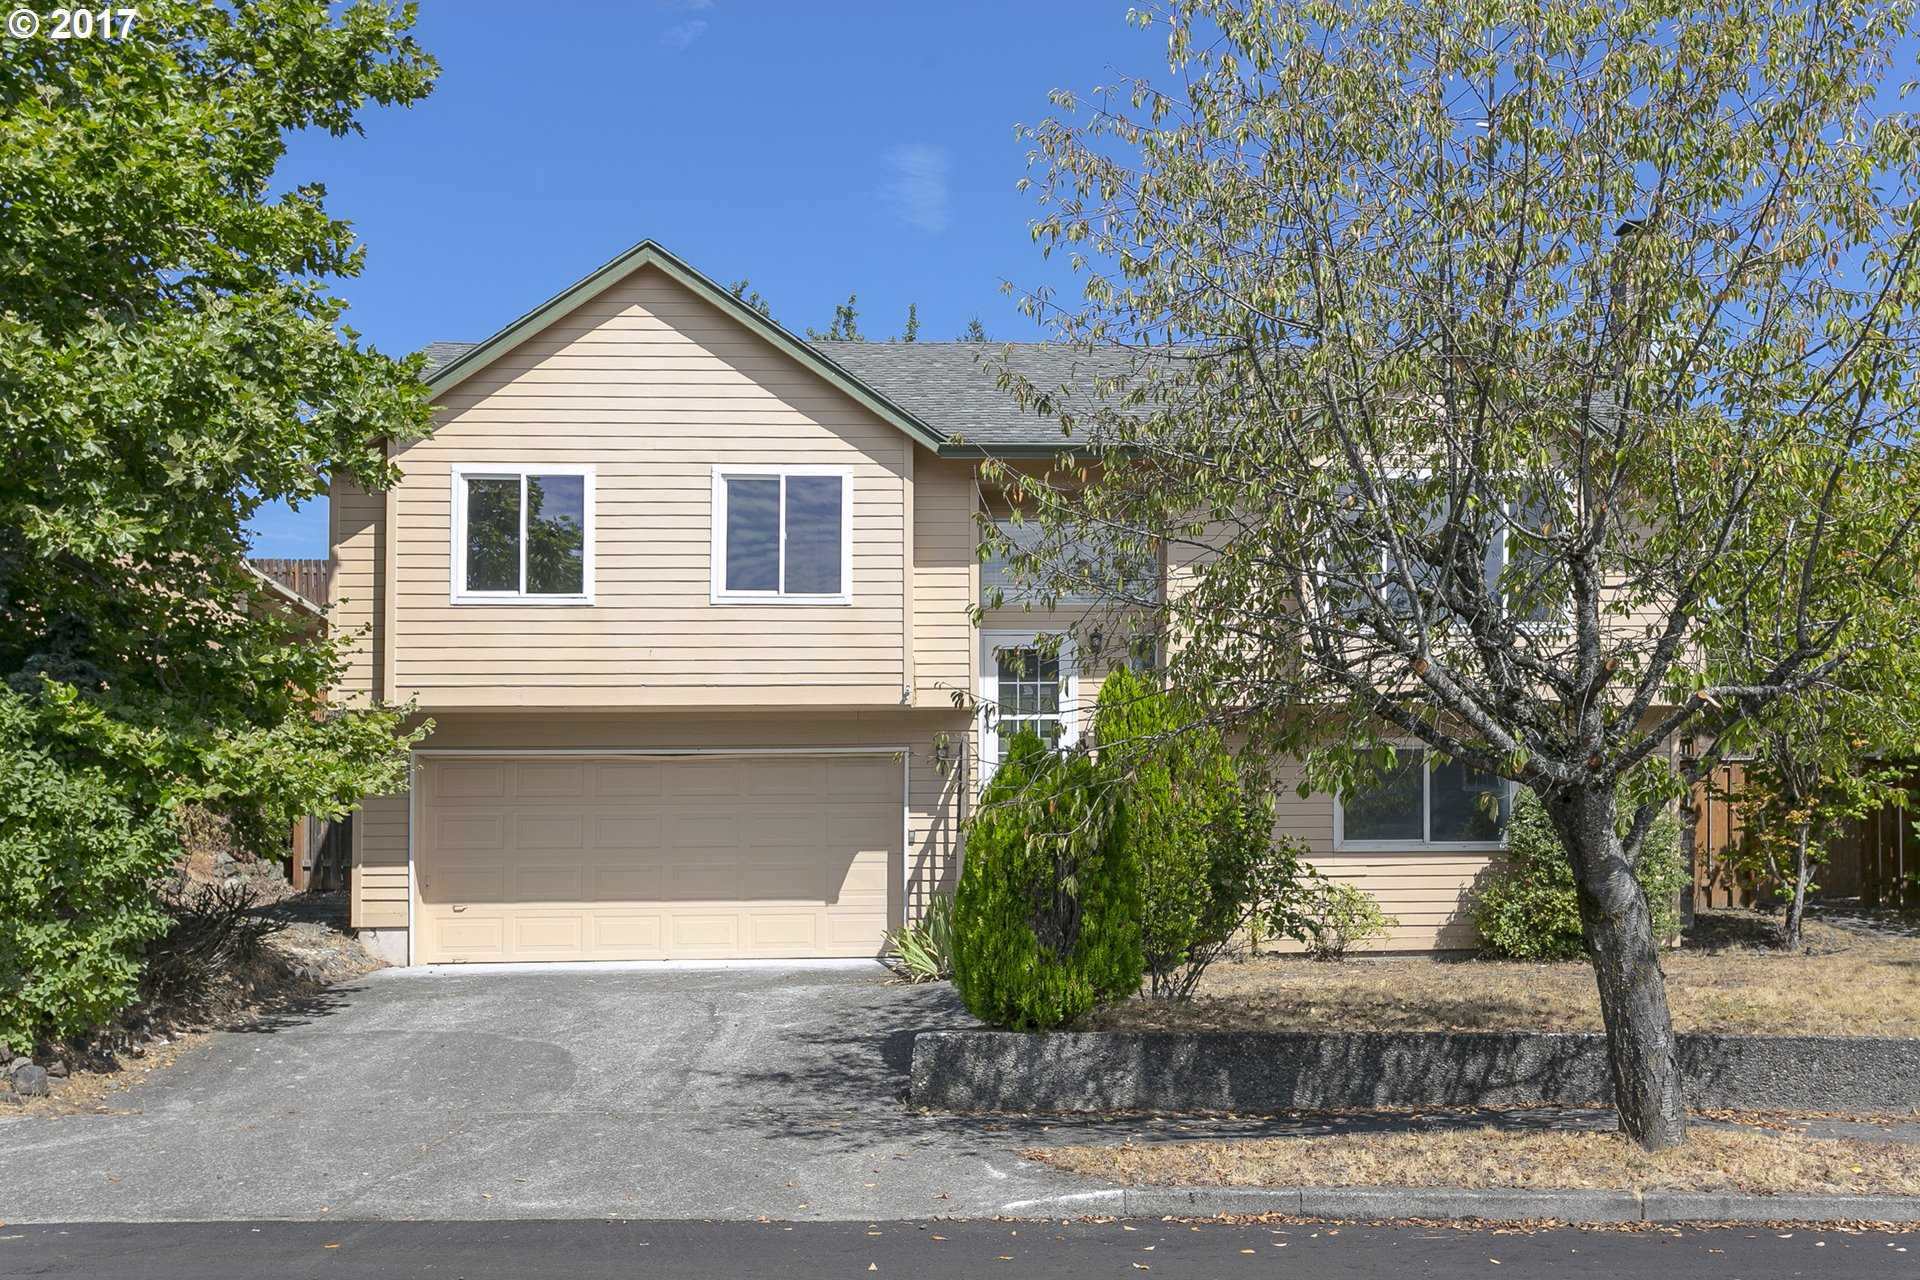 $306,000 - 4Br/3Ba -  for Sale in Corbeth, Troutdale